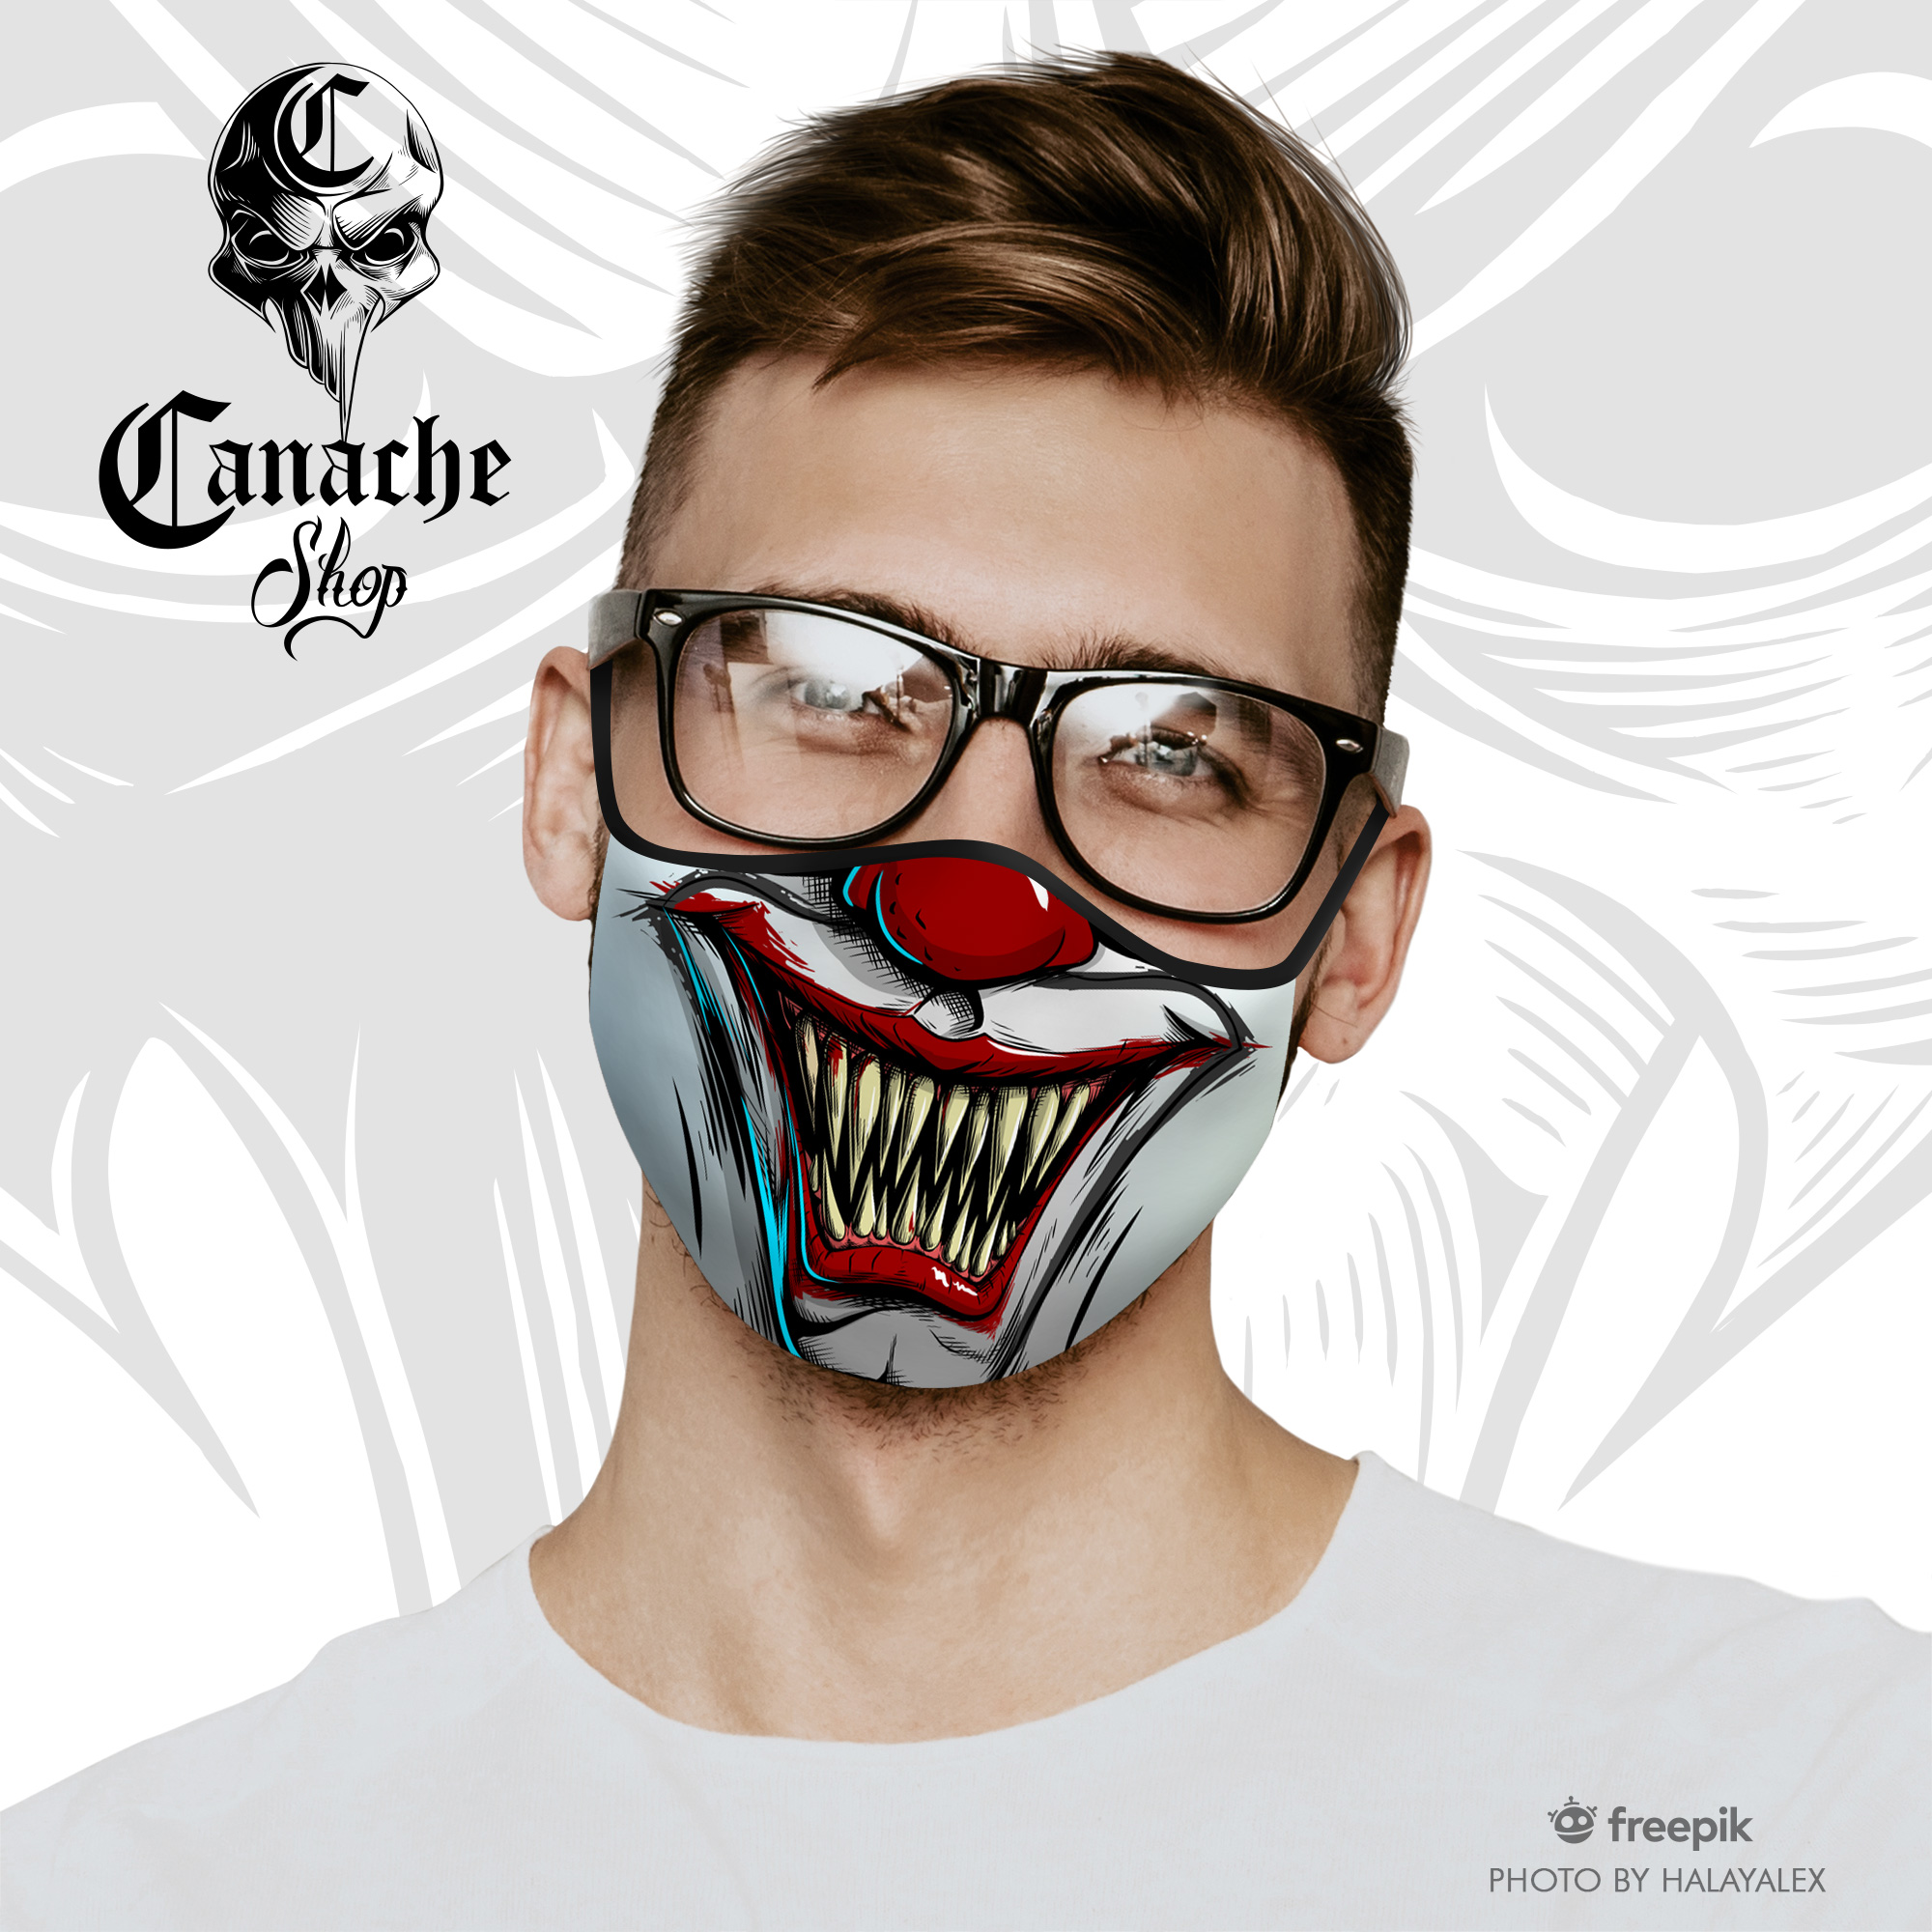 Evil Clown Face Mask · CanacheShop · Online Store Powered ...